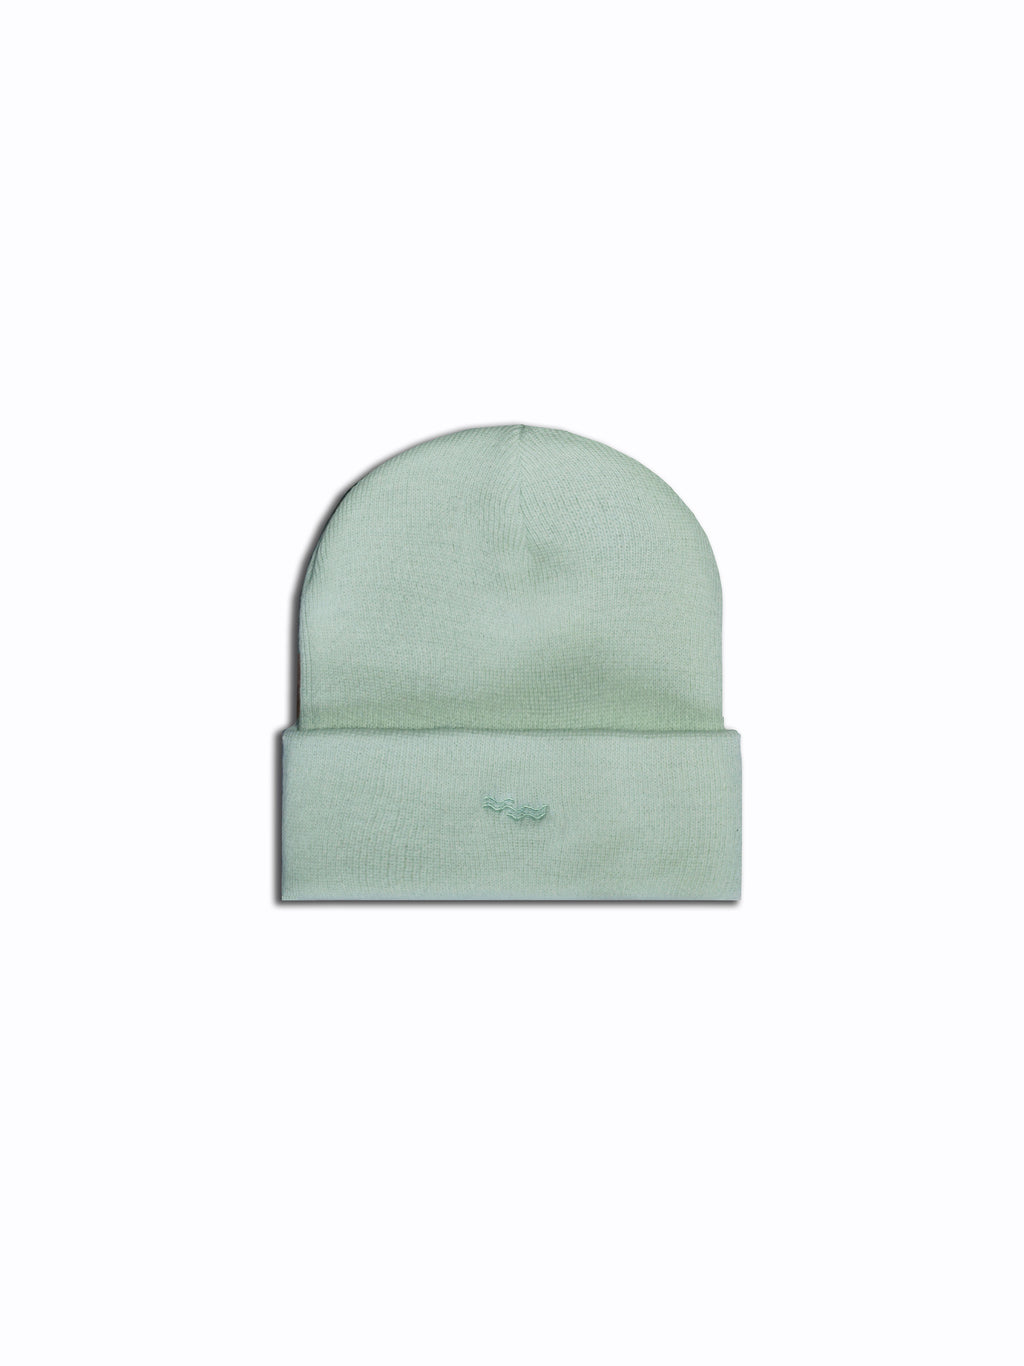 THE MINT BEANIE